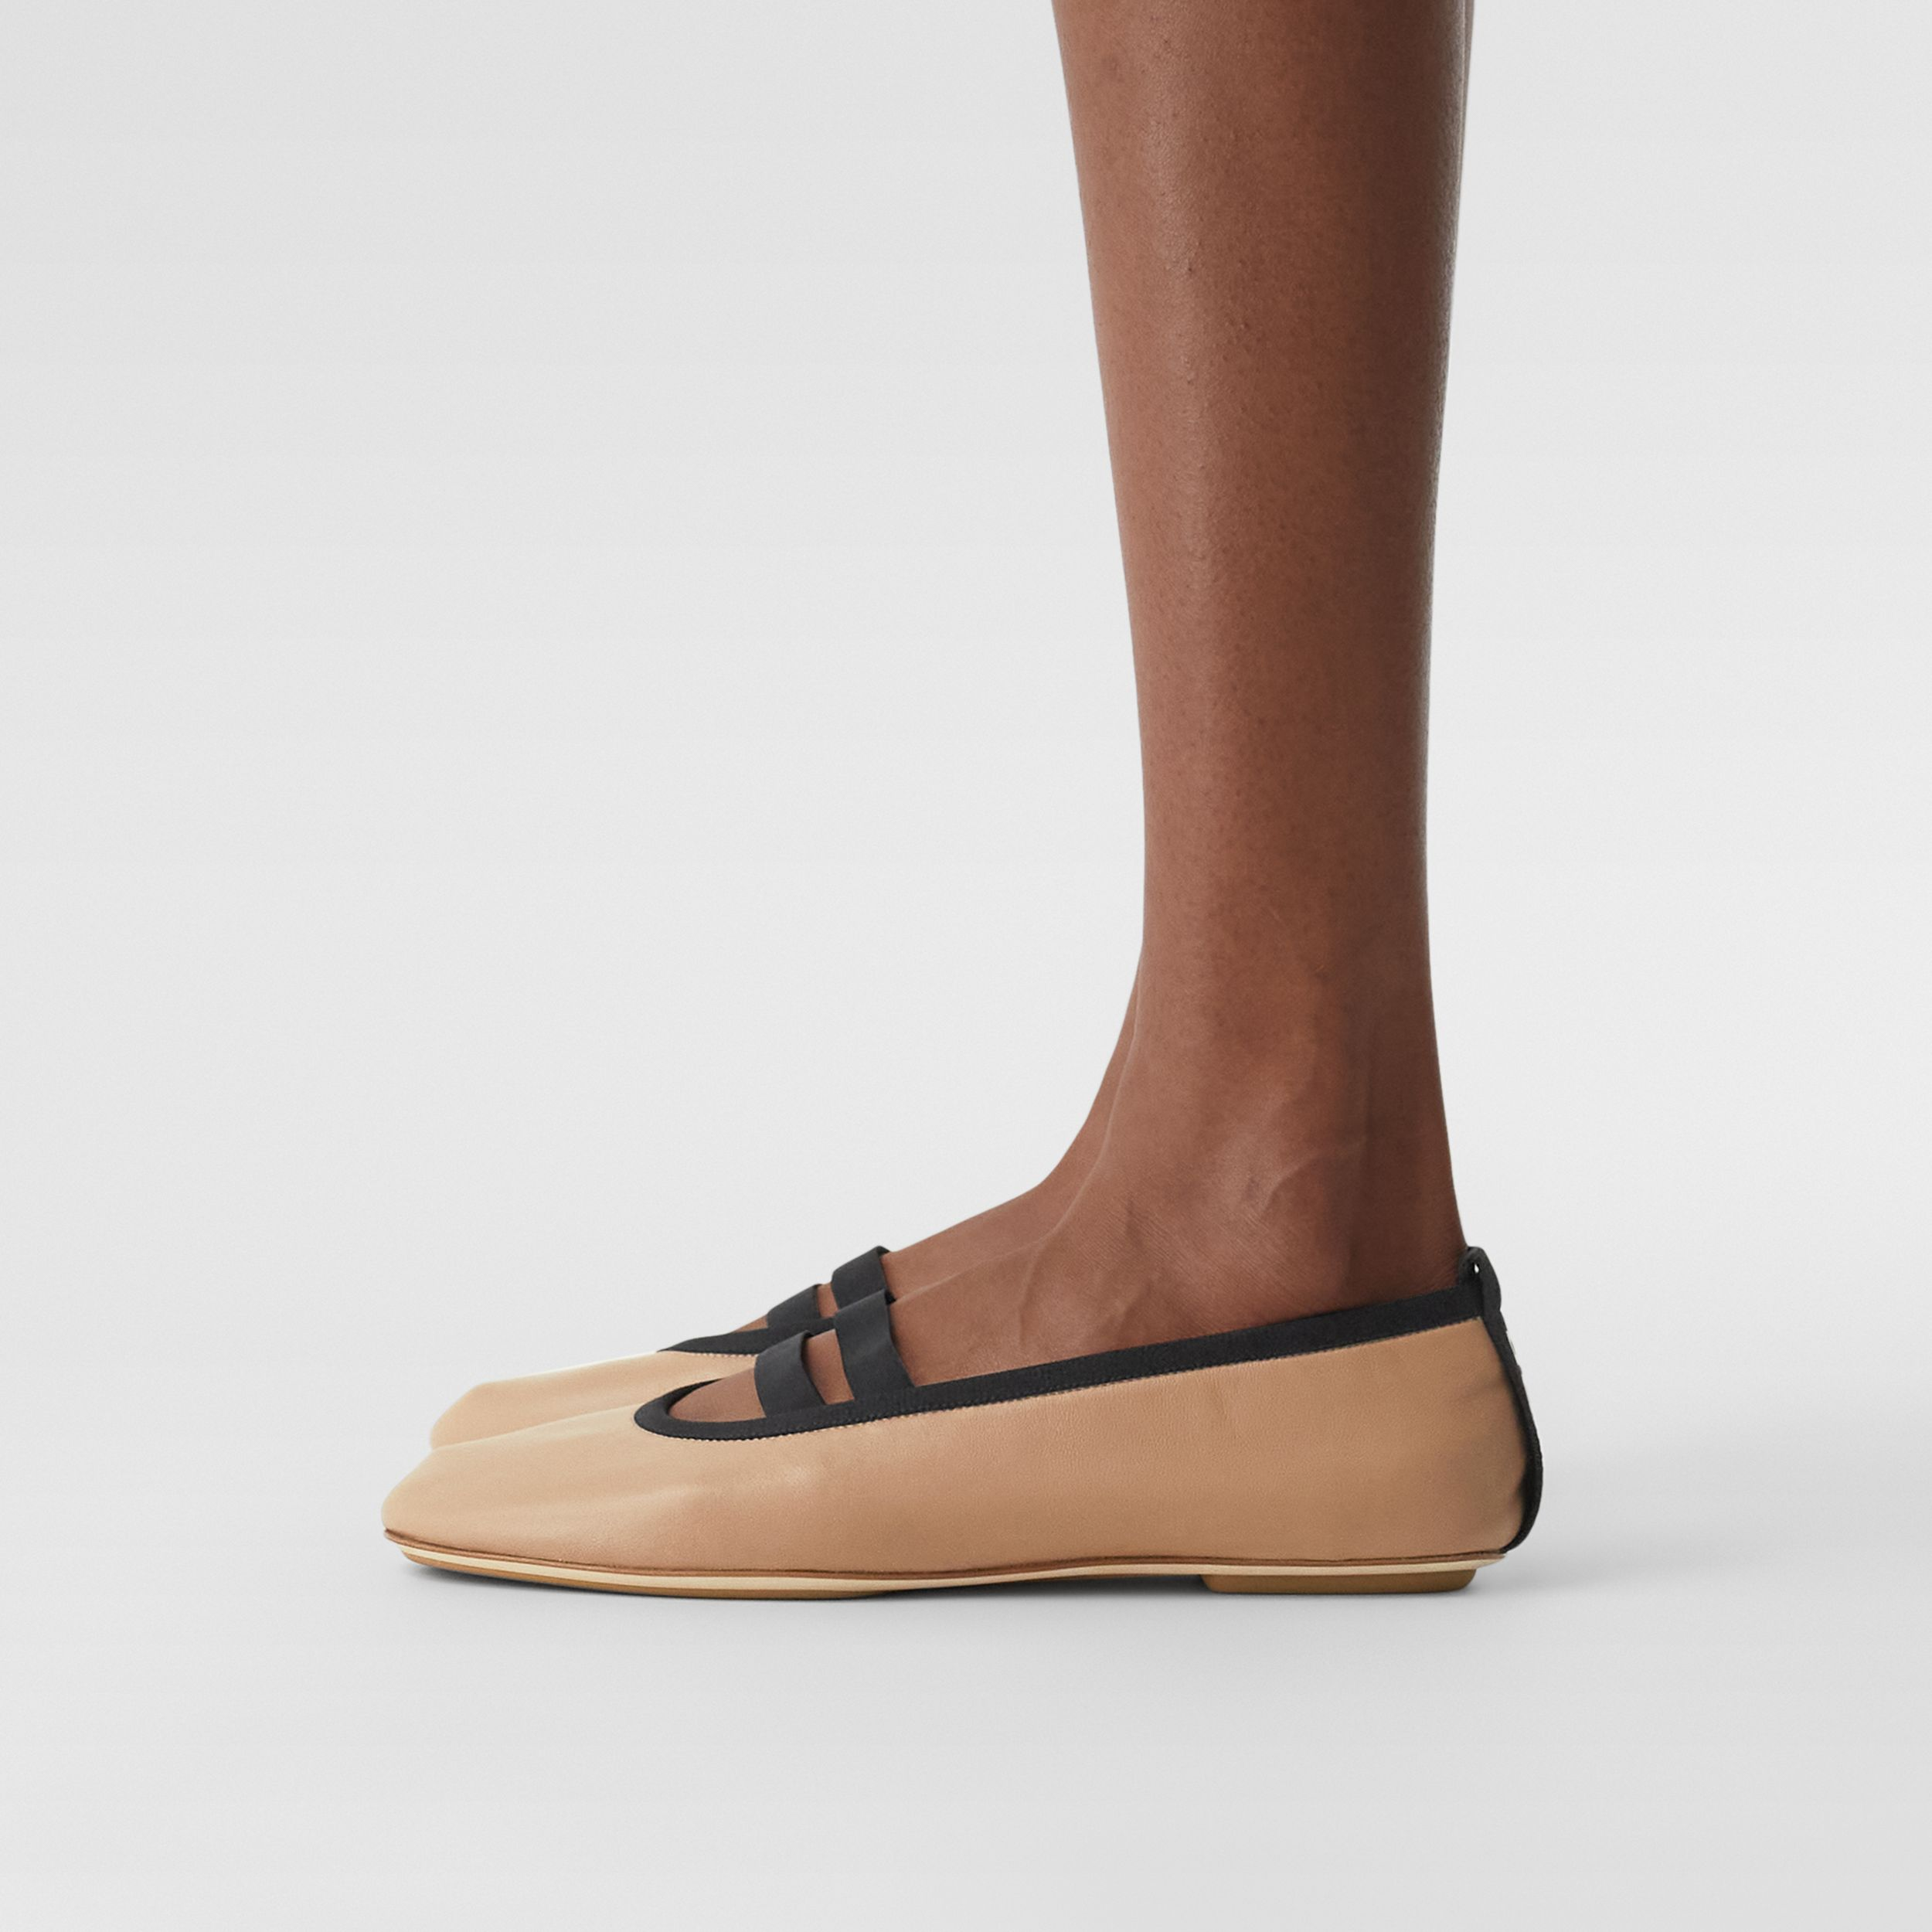 Logo Detail Lambskin Ballerinas in Camel - Women | Burberry - 3